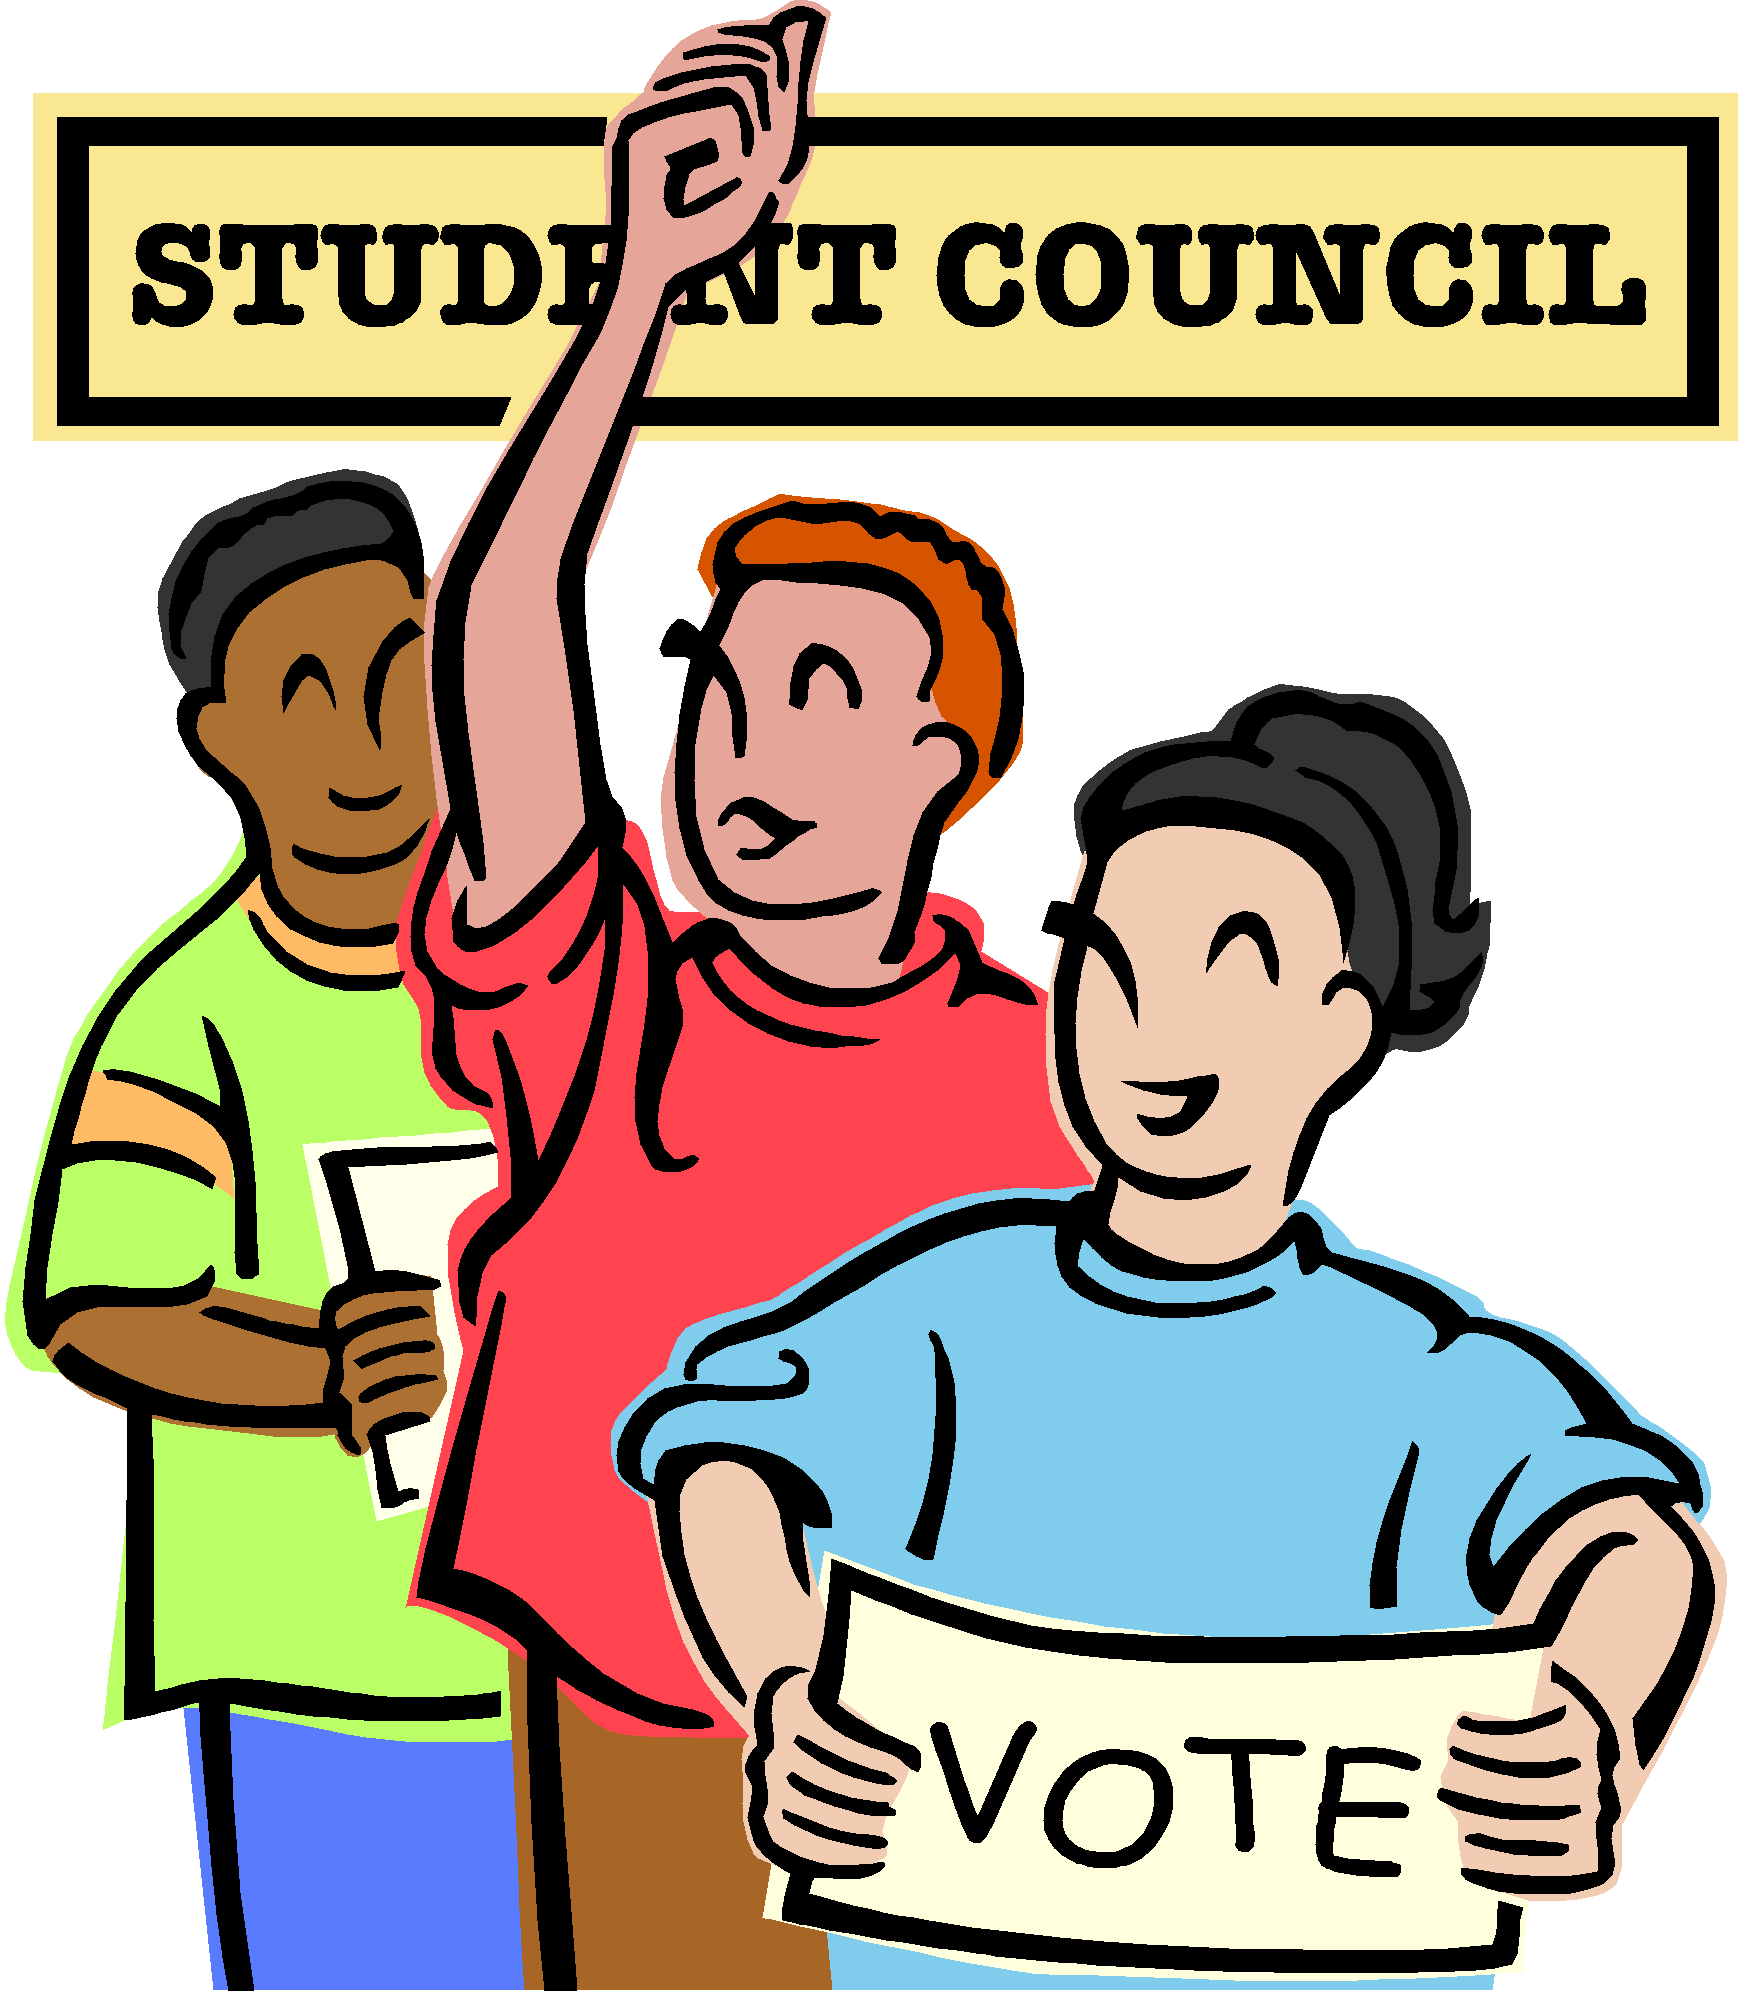 Hand clipart voting. Democracy student council election